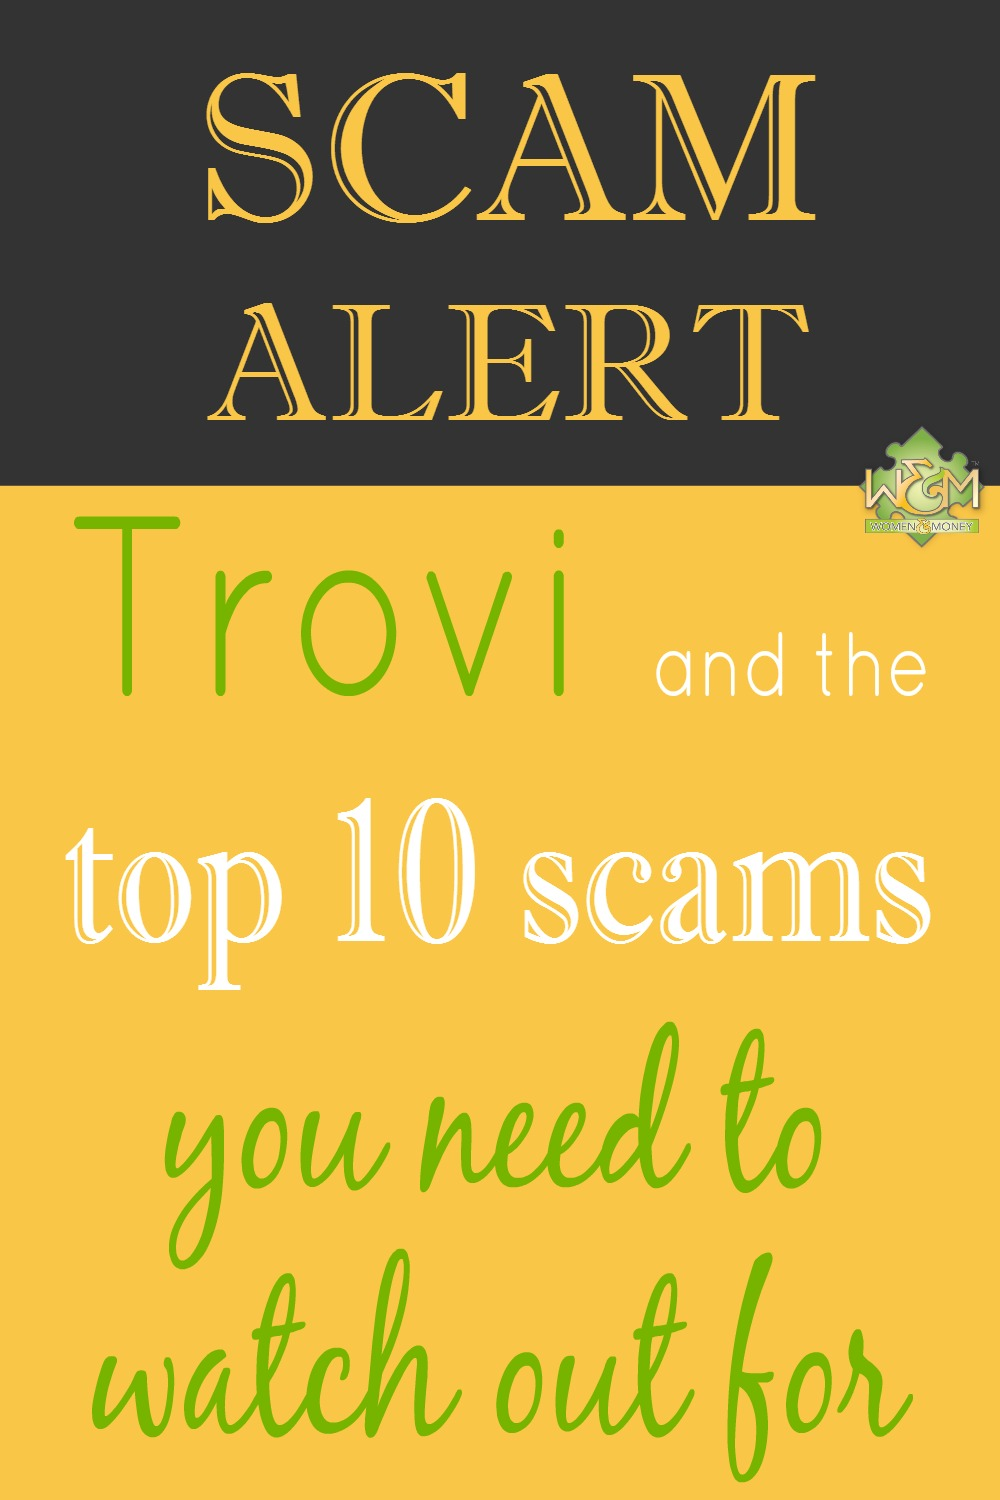 Arm yourself with knowledge: read a story about the Trovi virus and a list of the top 10 scams you need to watch out for!